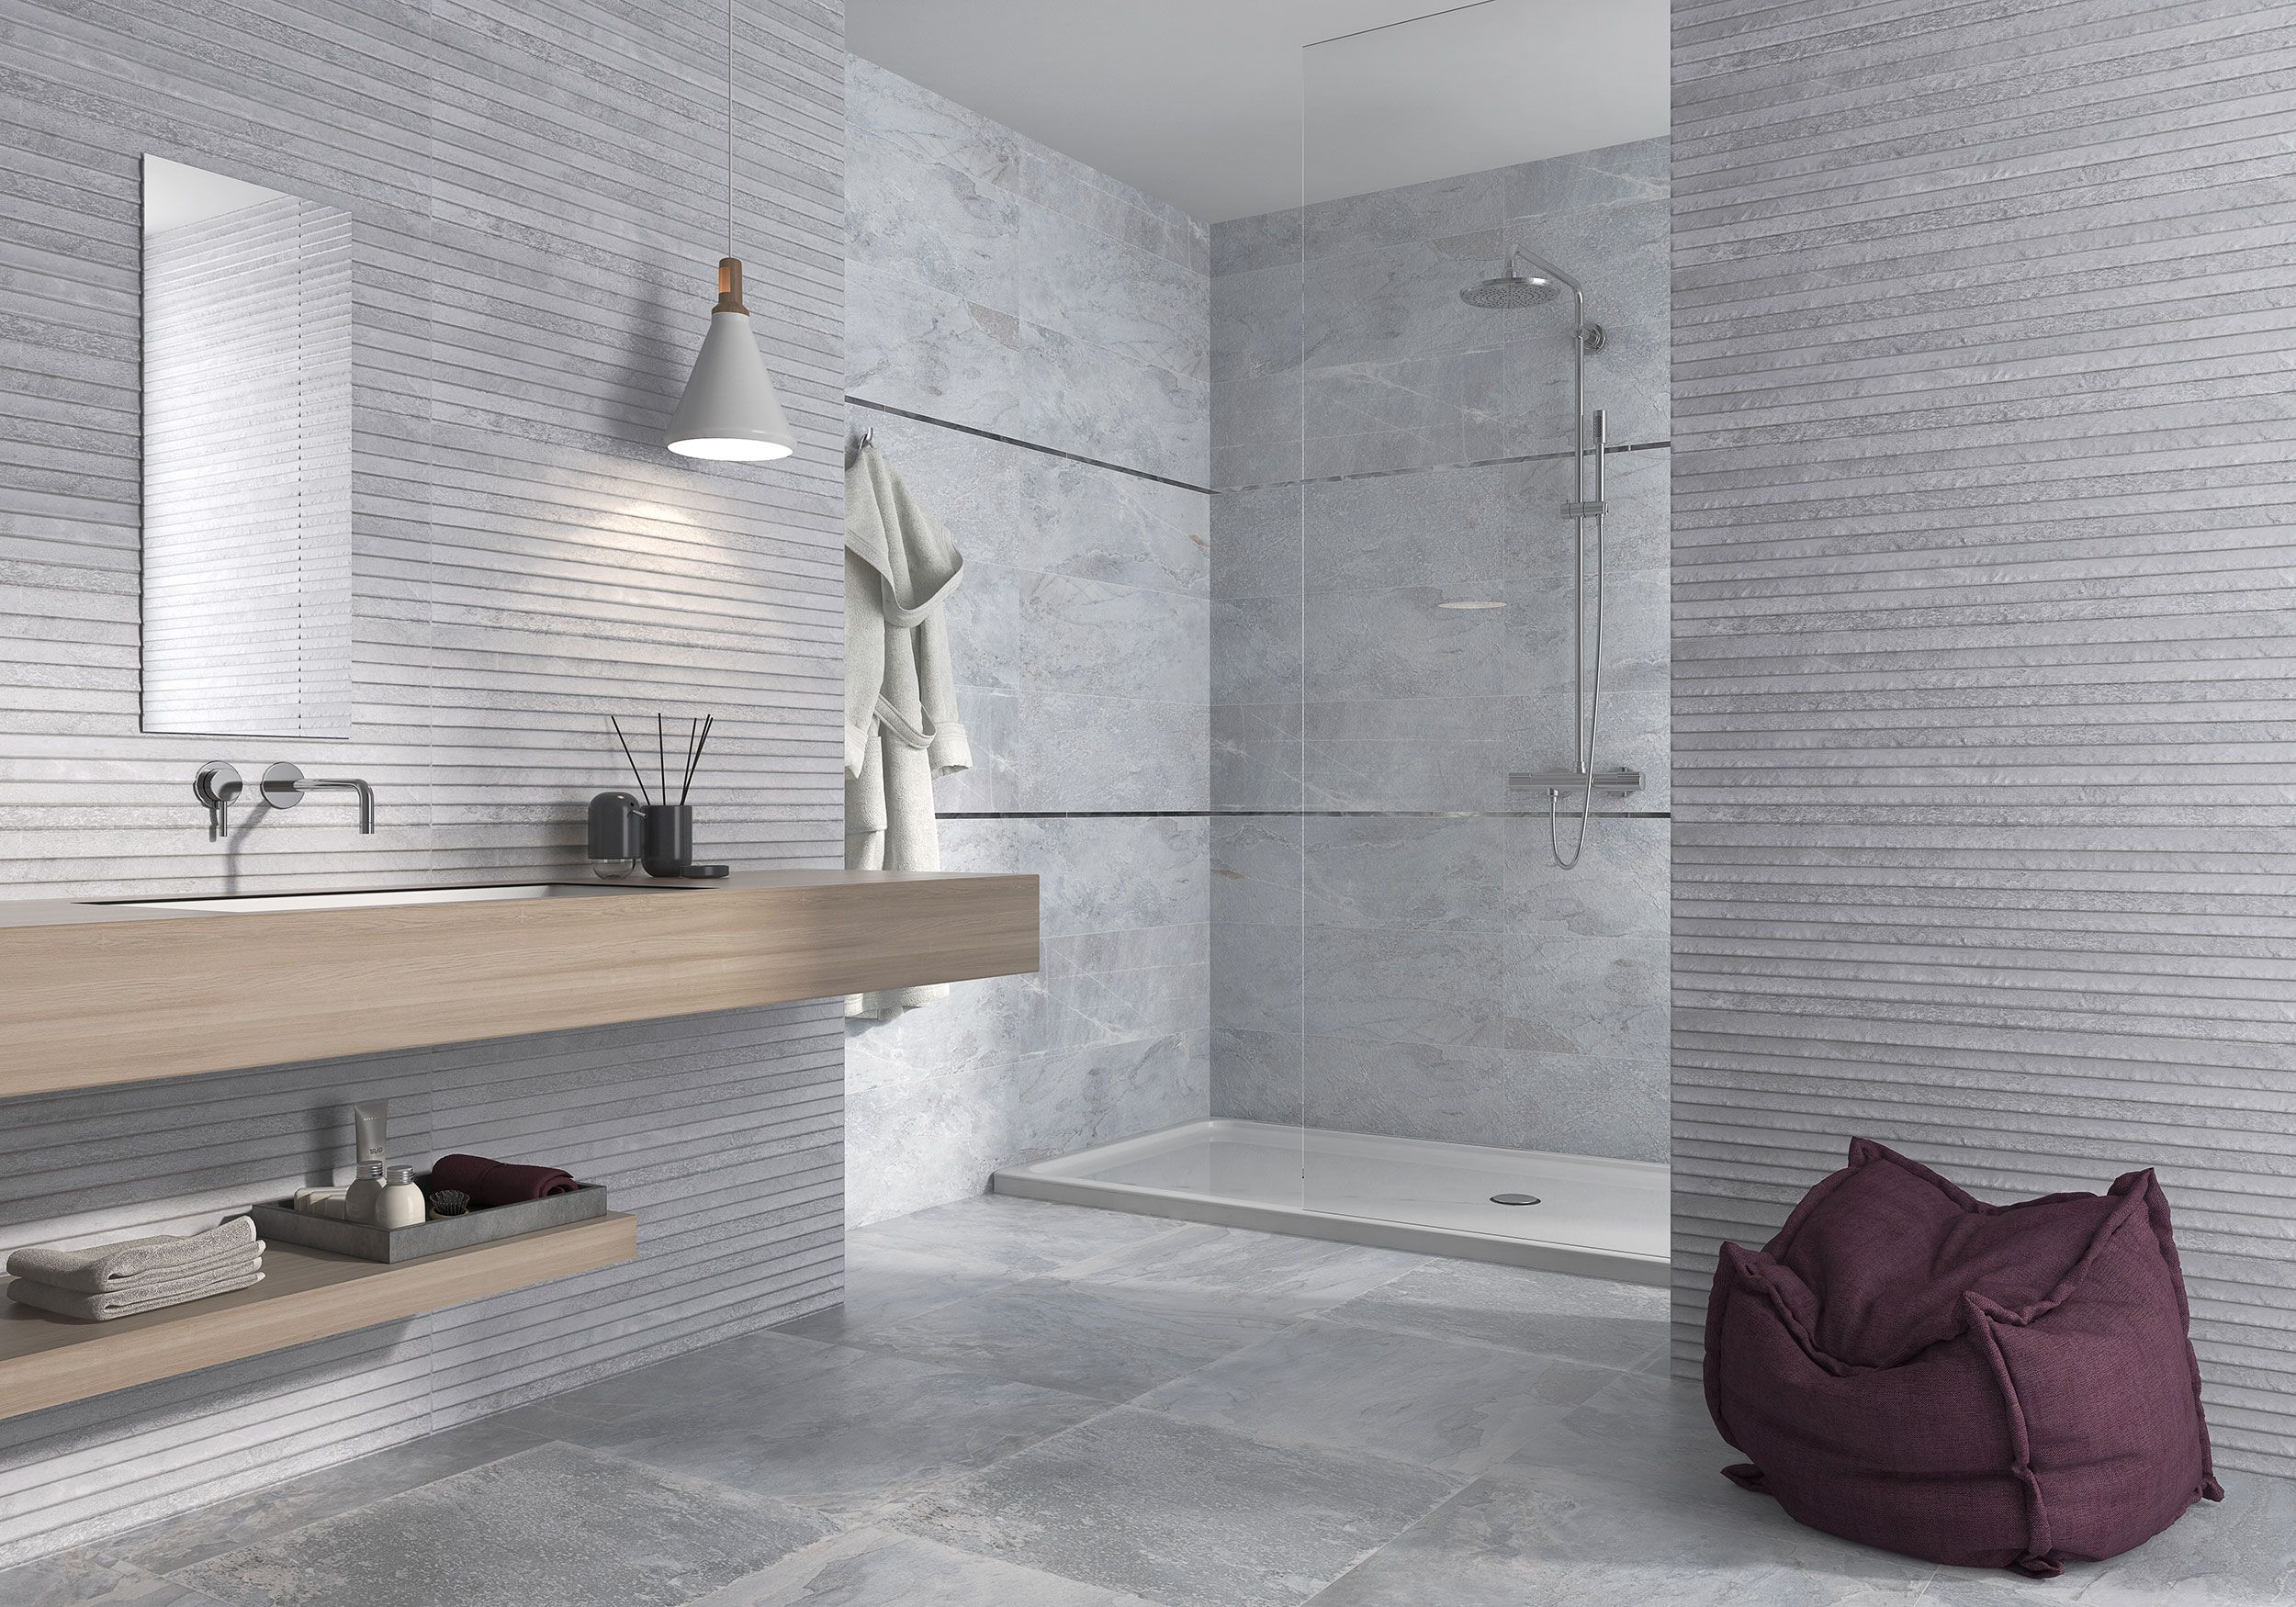 Vista By Fine In Grey Available In 20x20 10x20 And 10x10 Field Tile 1x1 Mosaic And 3x10 Bullnose Www Galleriastone Com Bagno Pavimenti